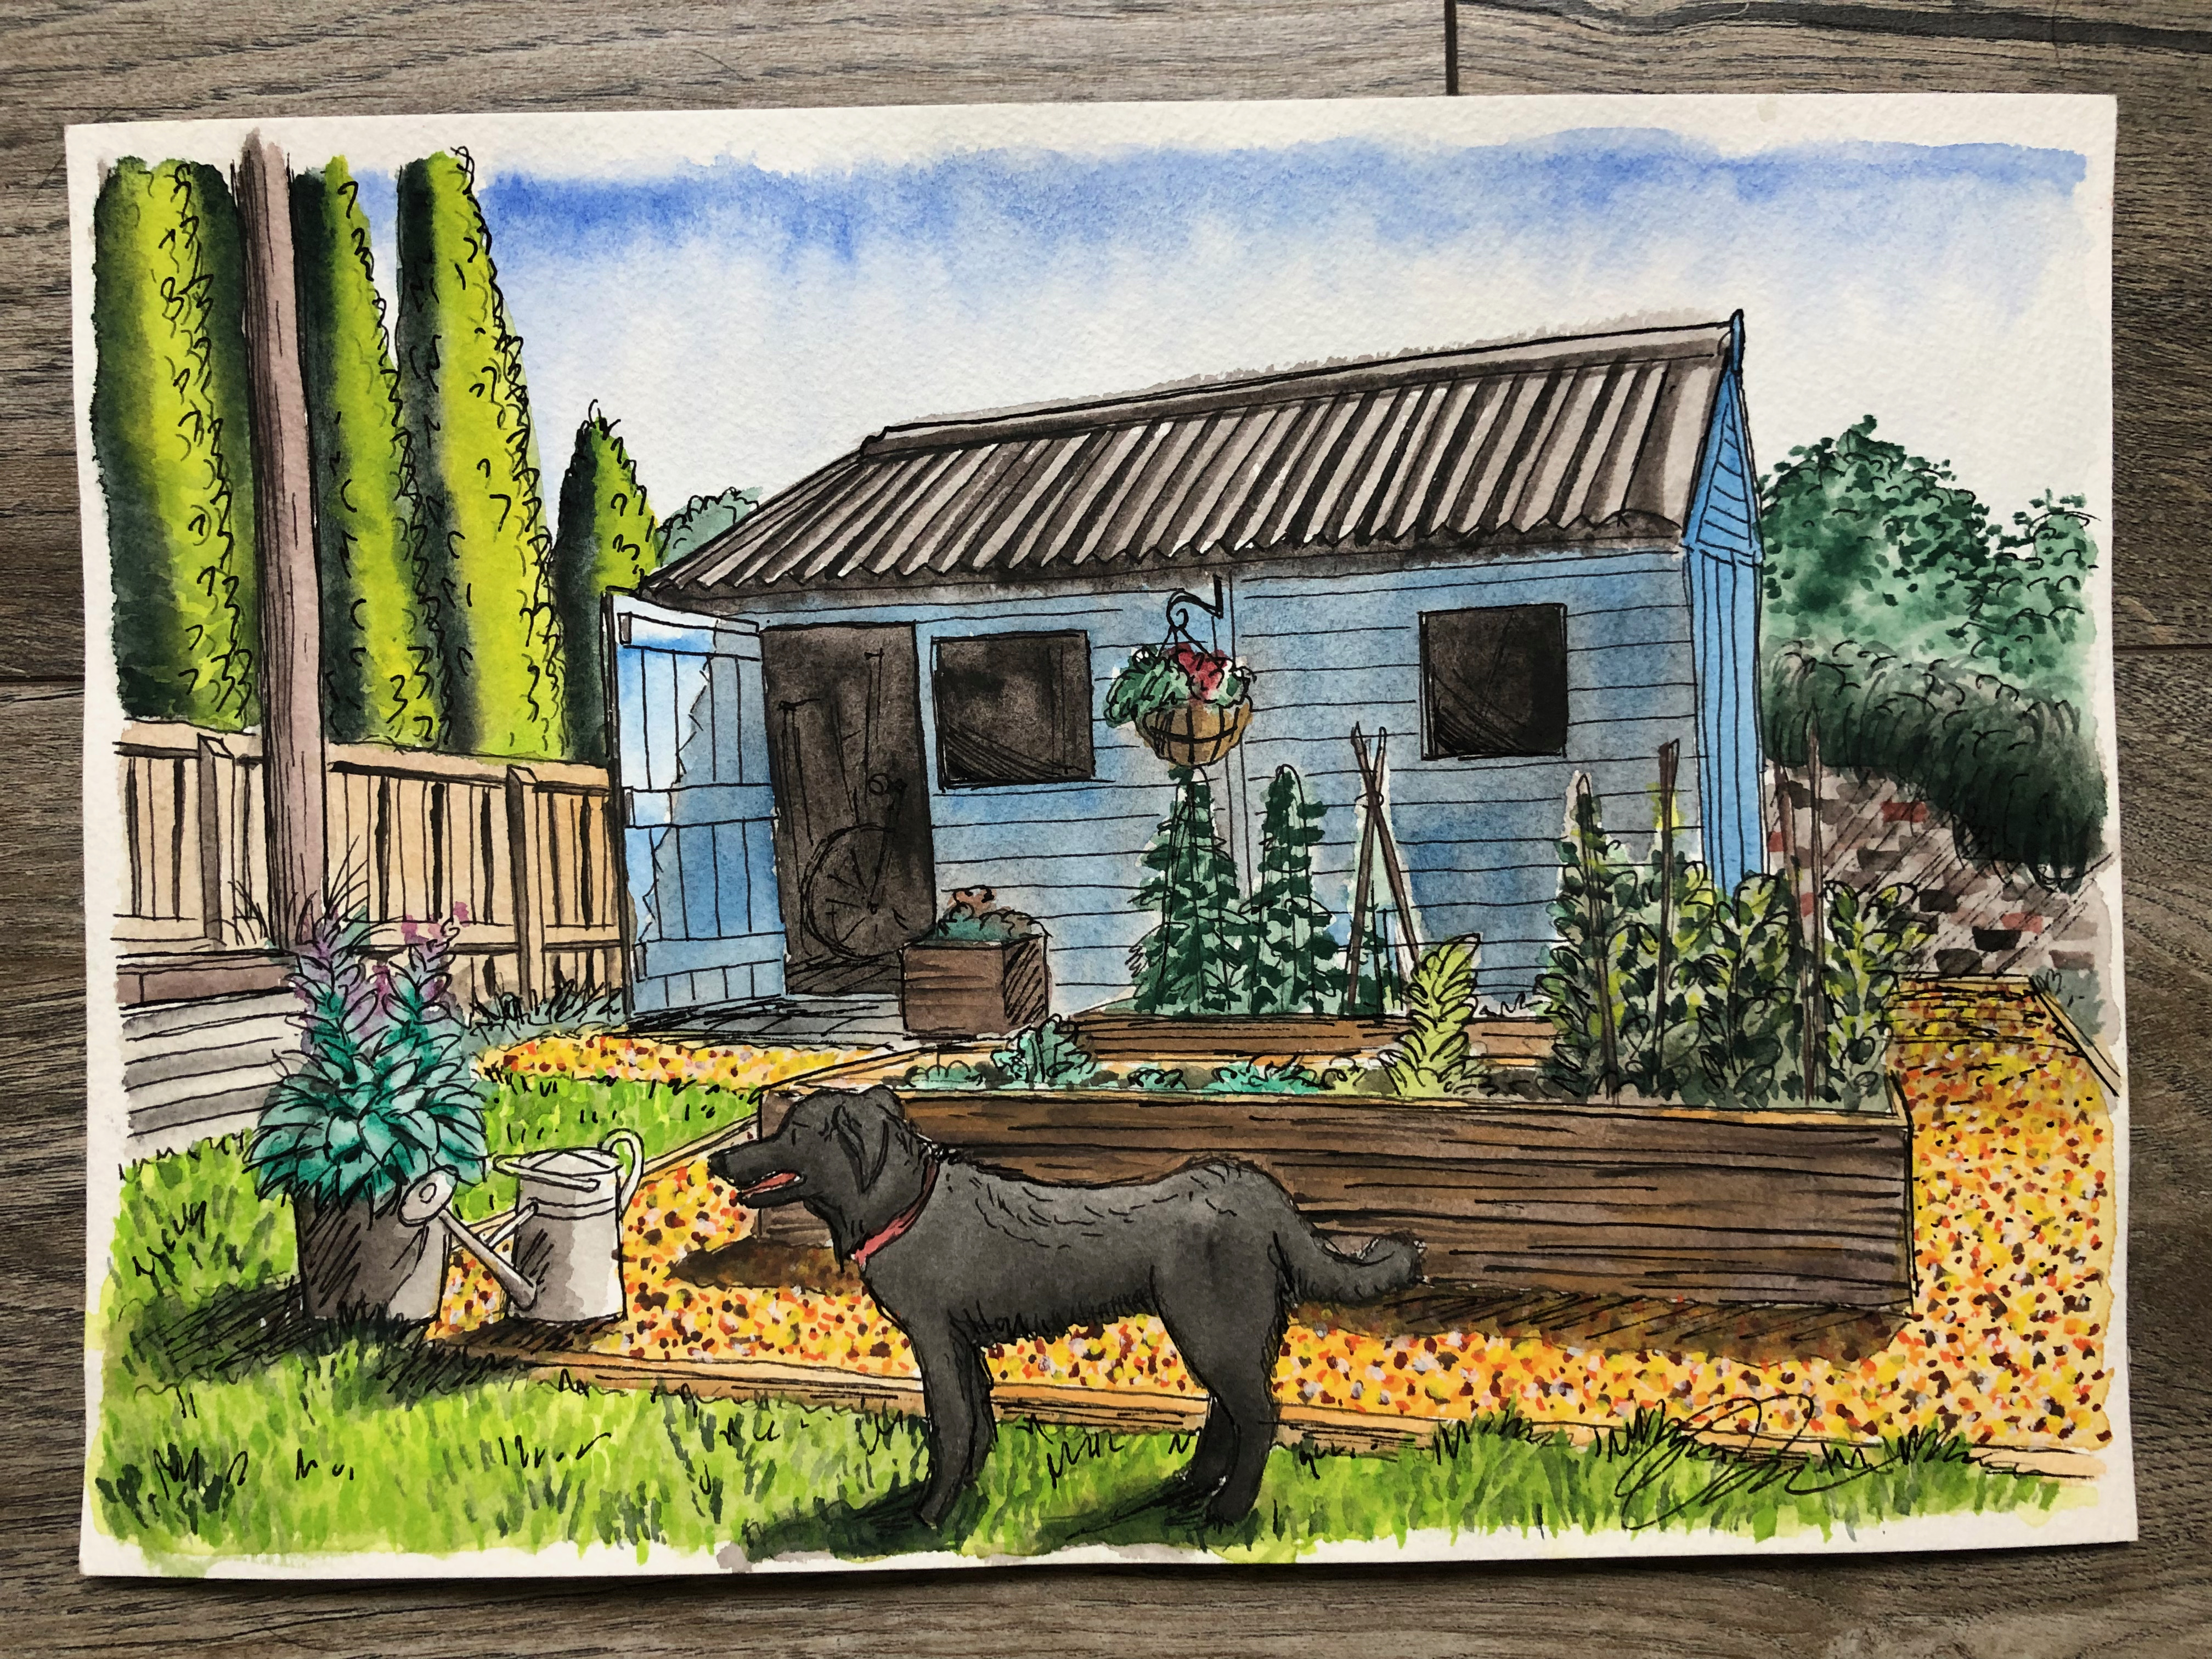 Painting of garden shed and dog.